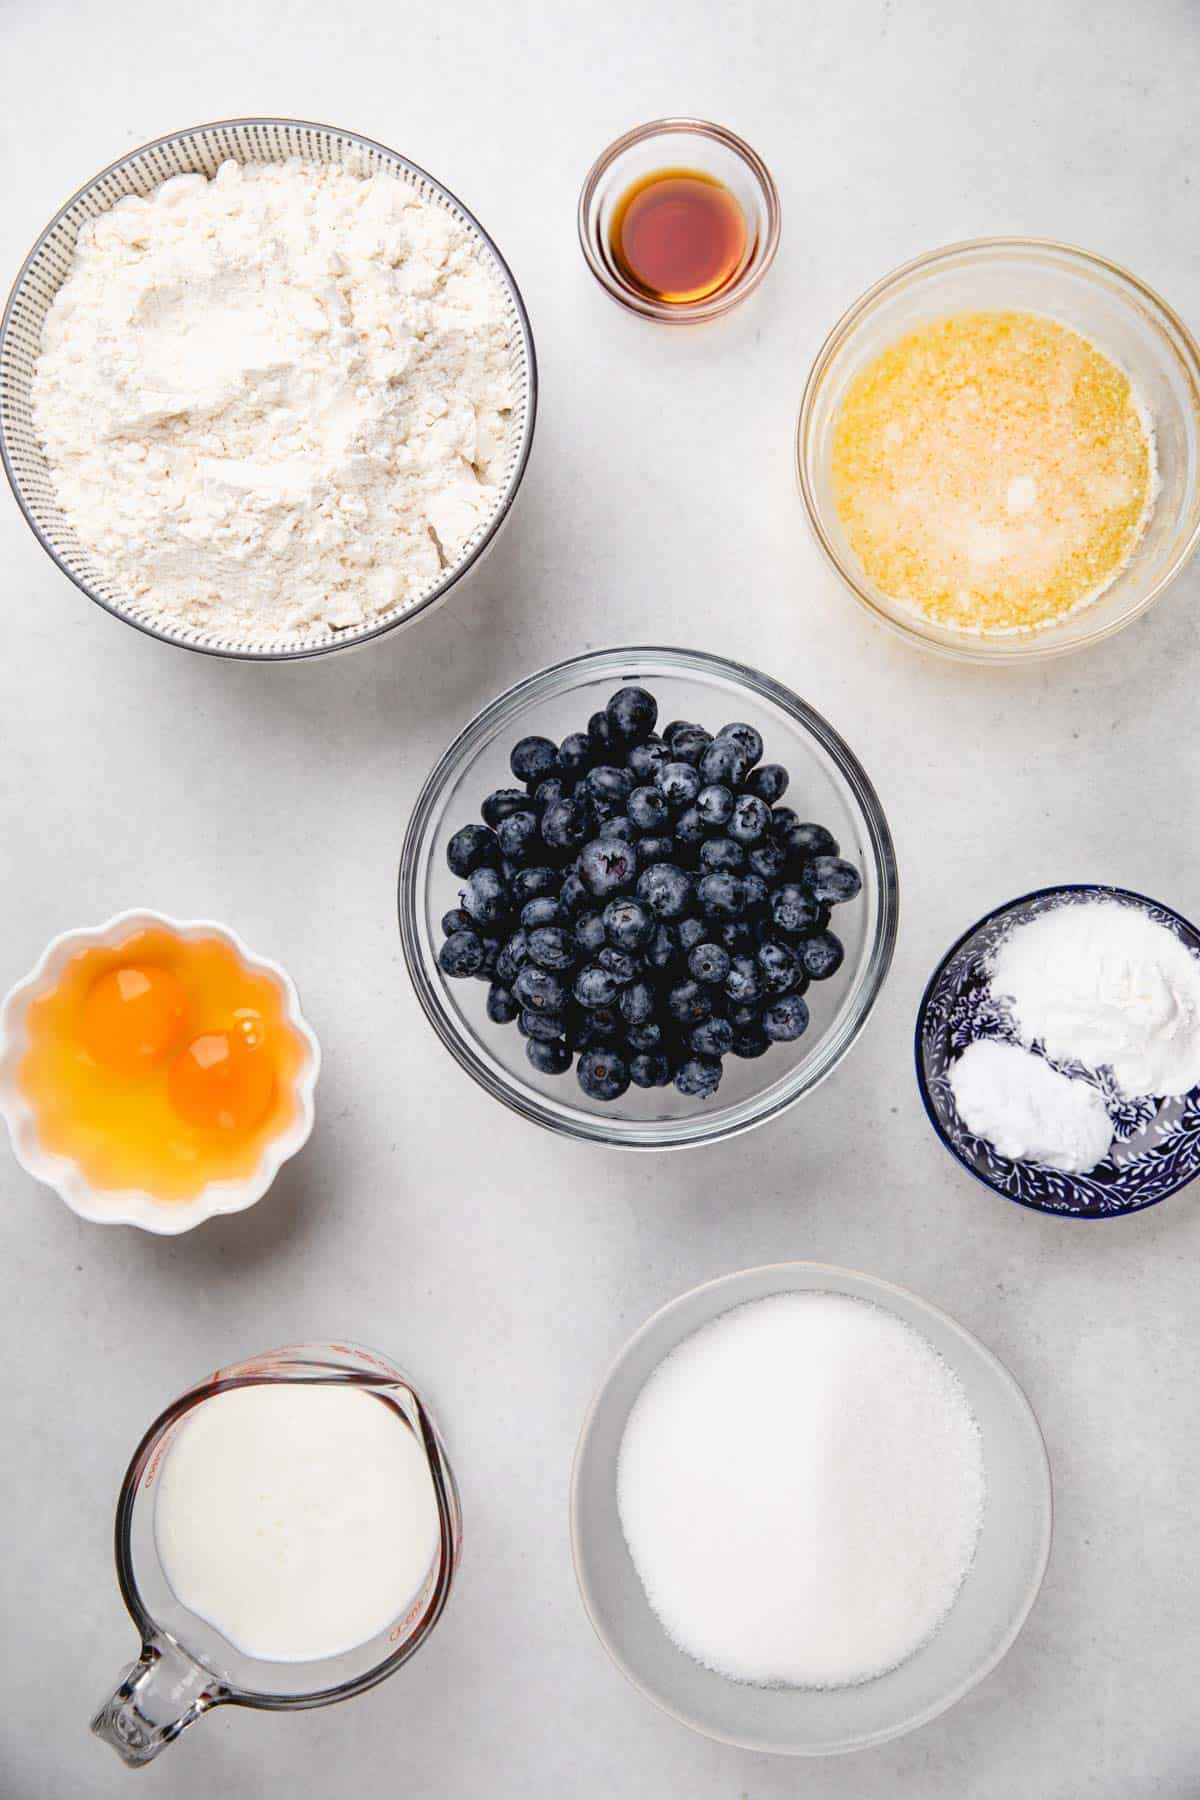 Ingredients for blueberry muffins.